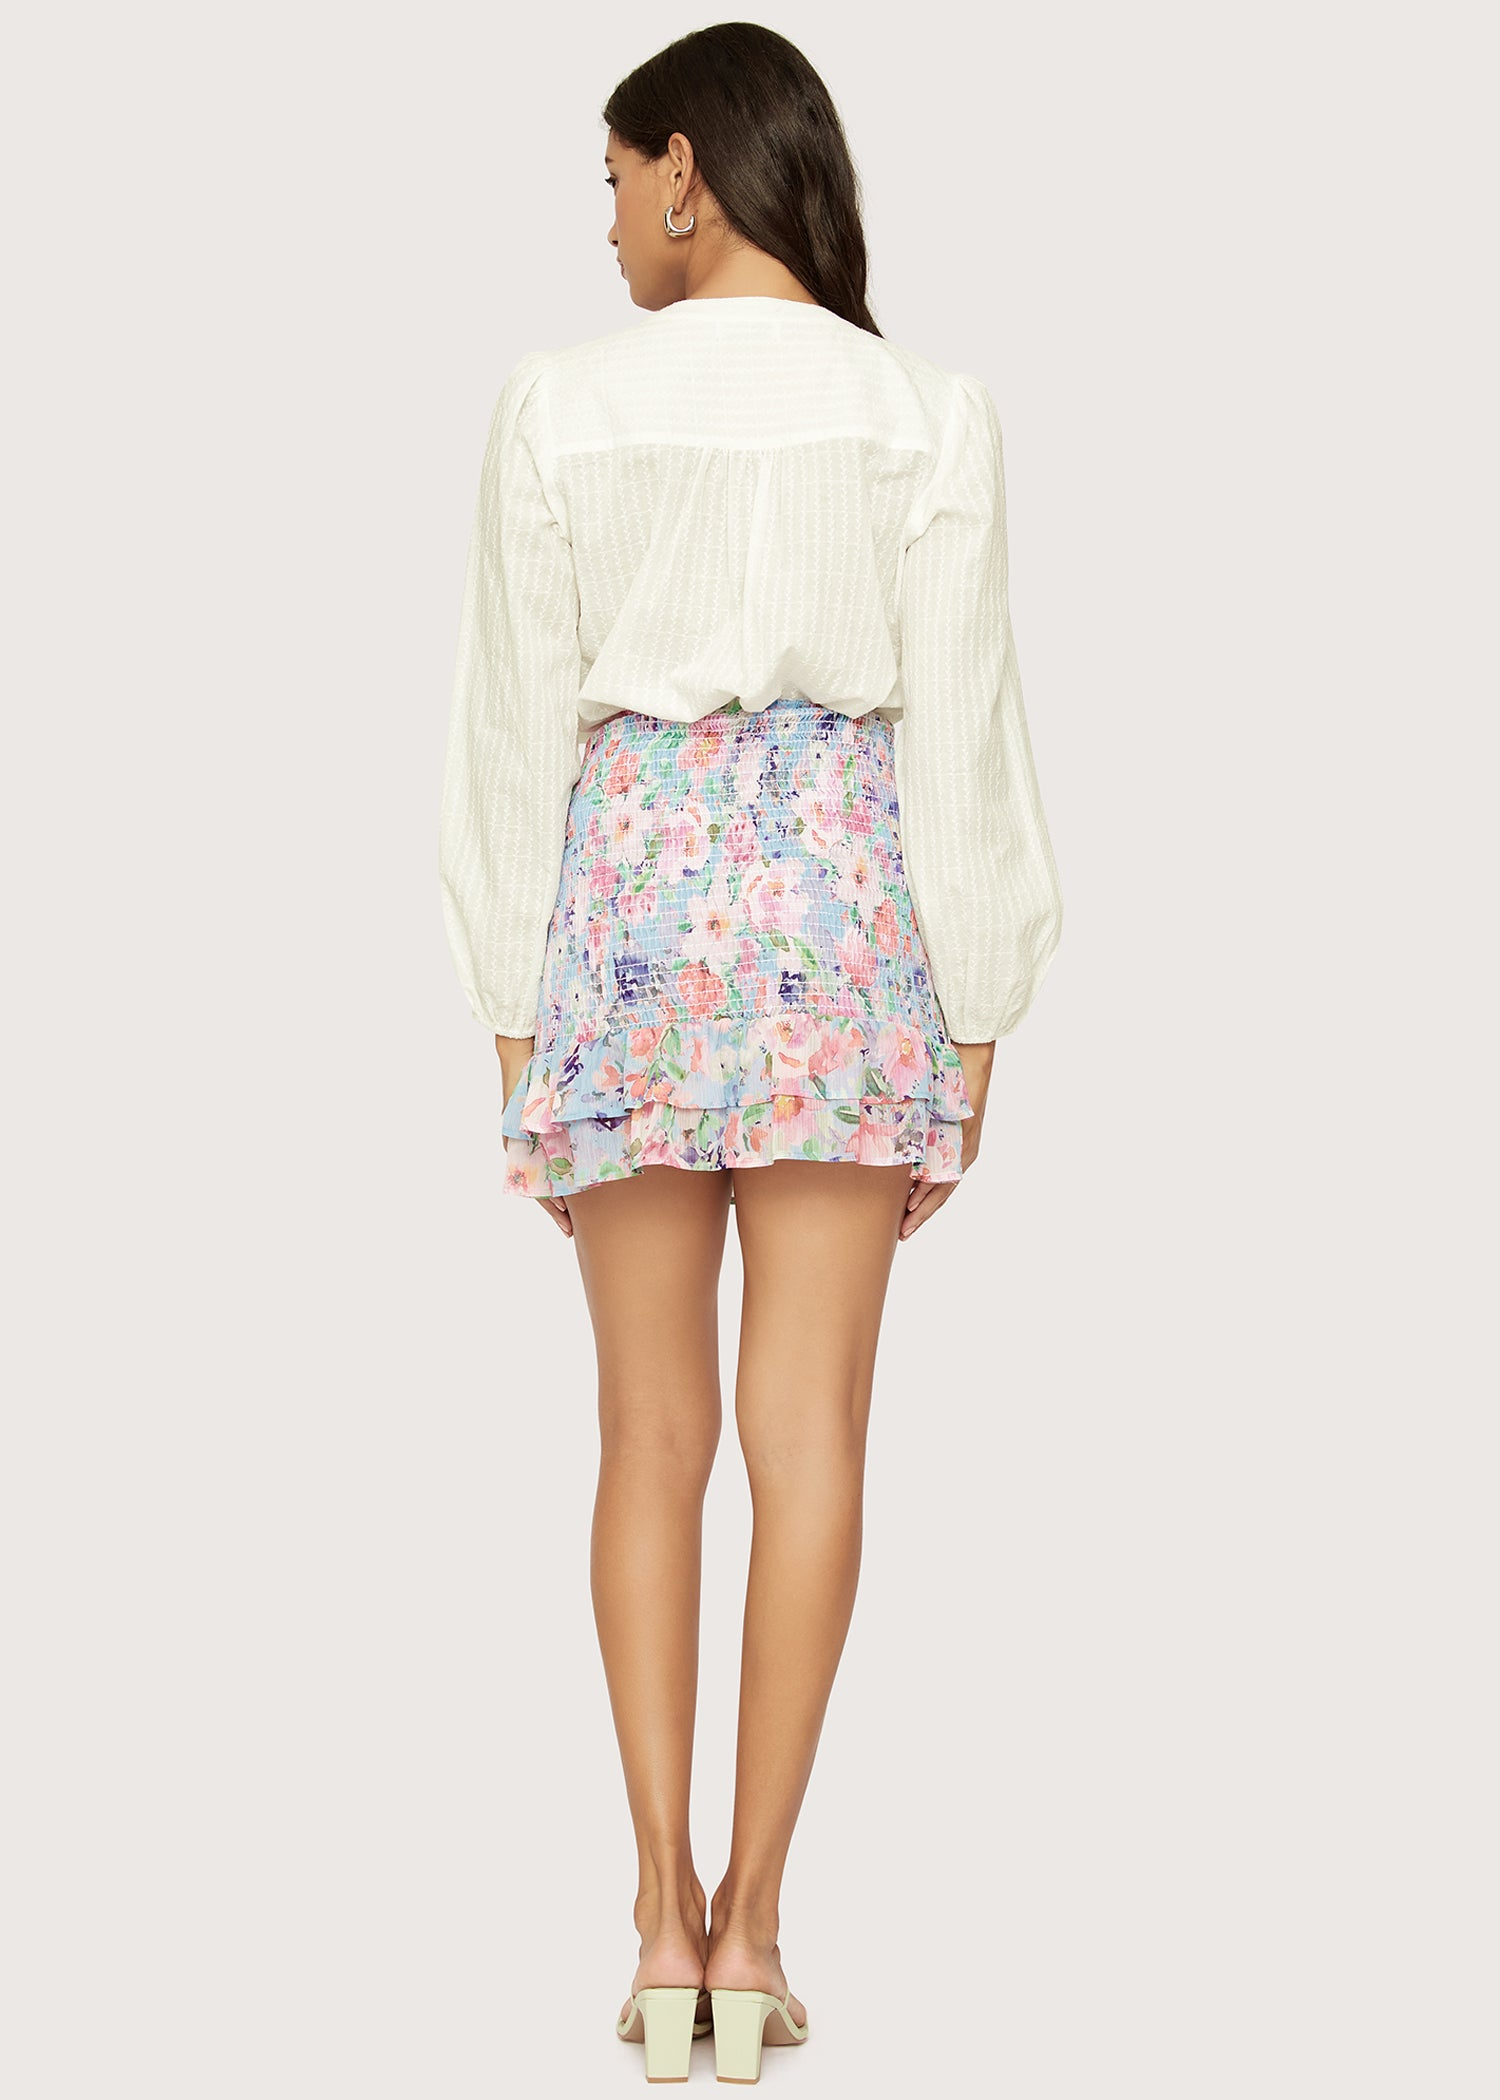 Monet's Garden Mini Skirt